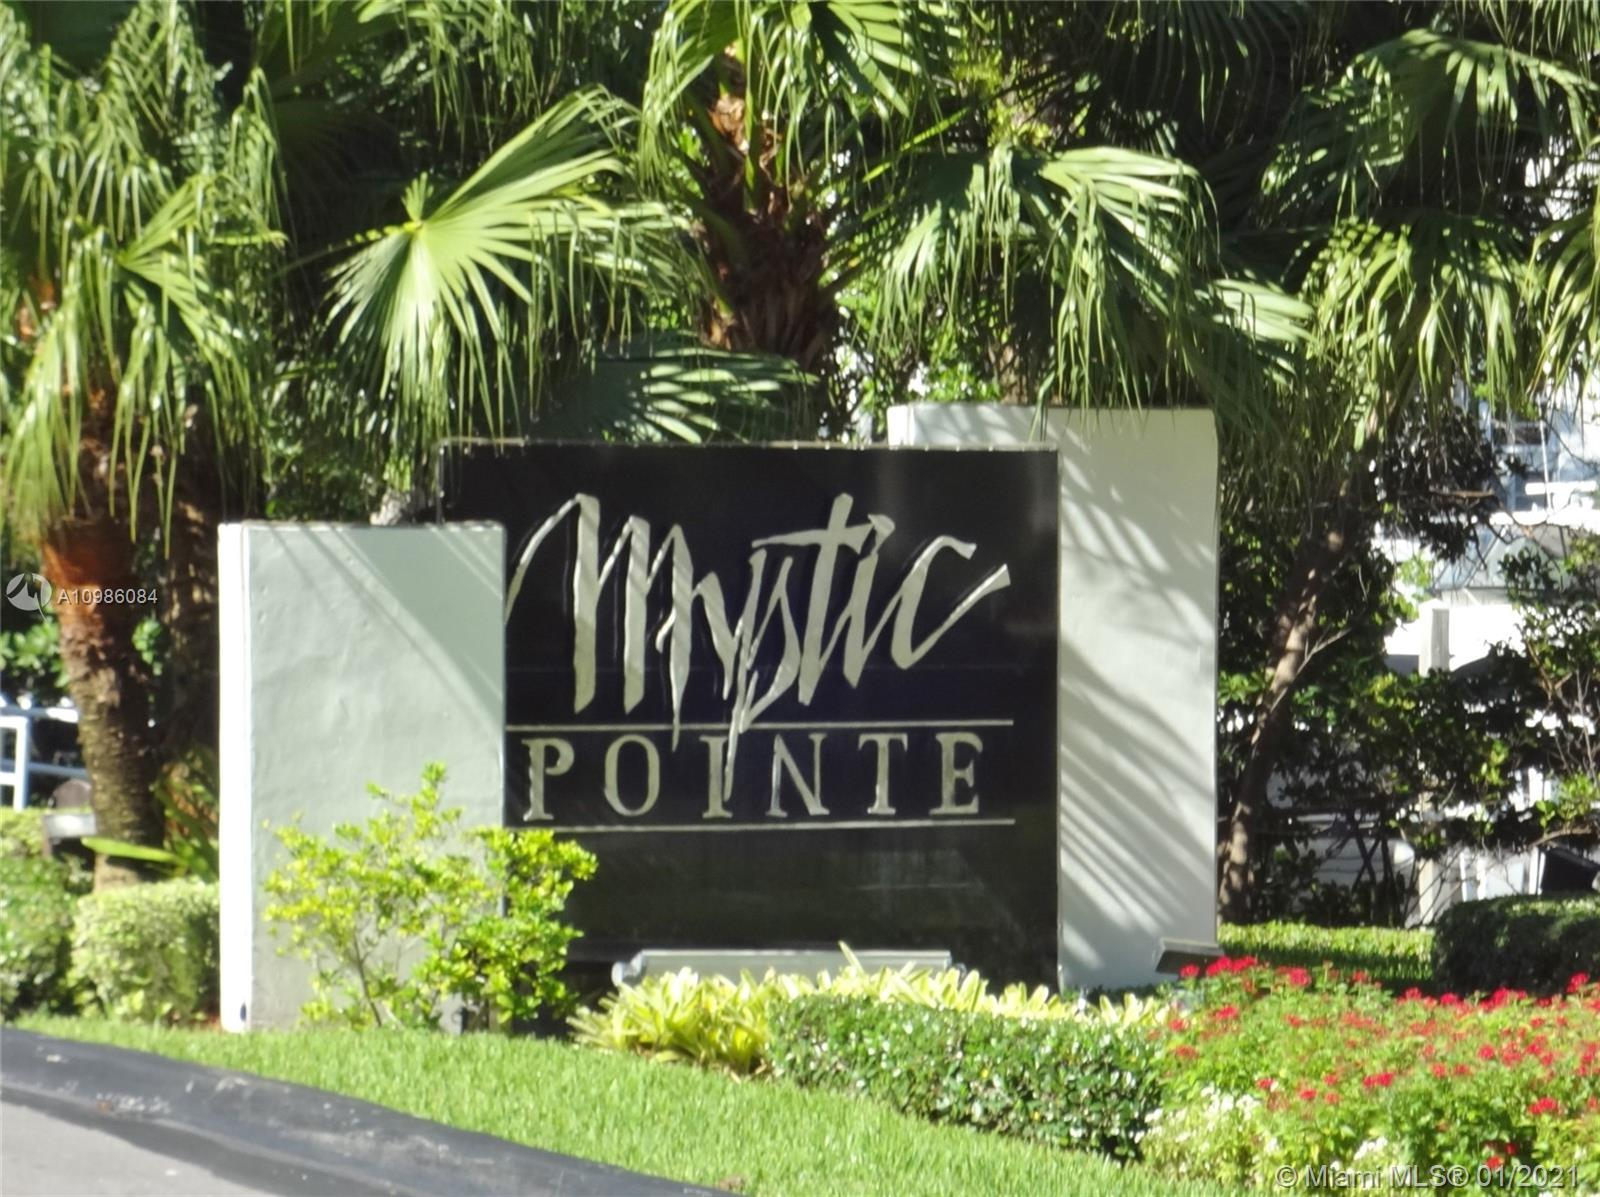 Photo of 3500 Mystic Pointe Dr #1801, Aventura, Florida, 33180 - Shops and View of the Building...